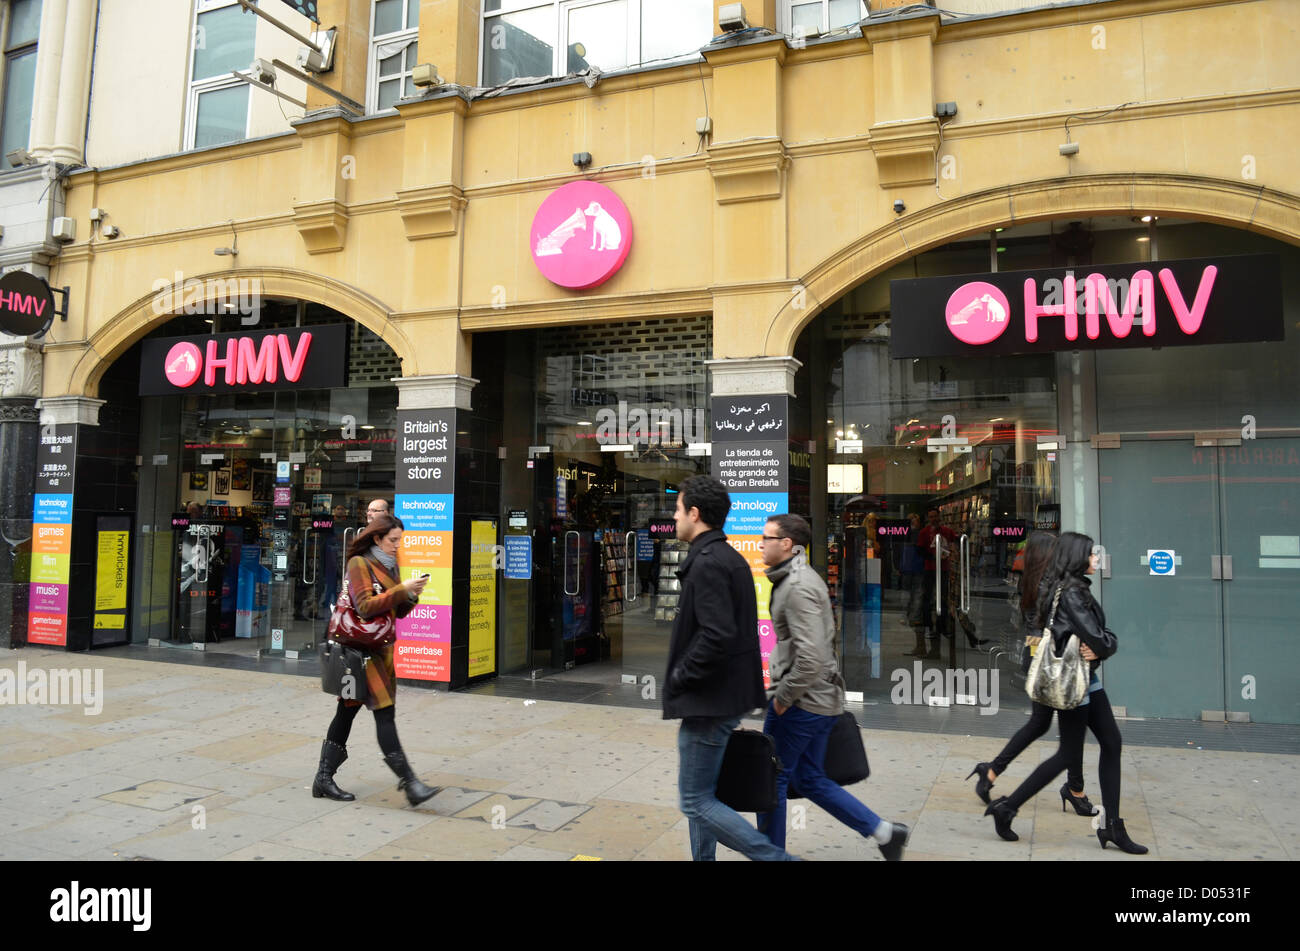 HMV Piccadilly store front - Stock Image